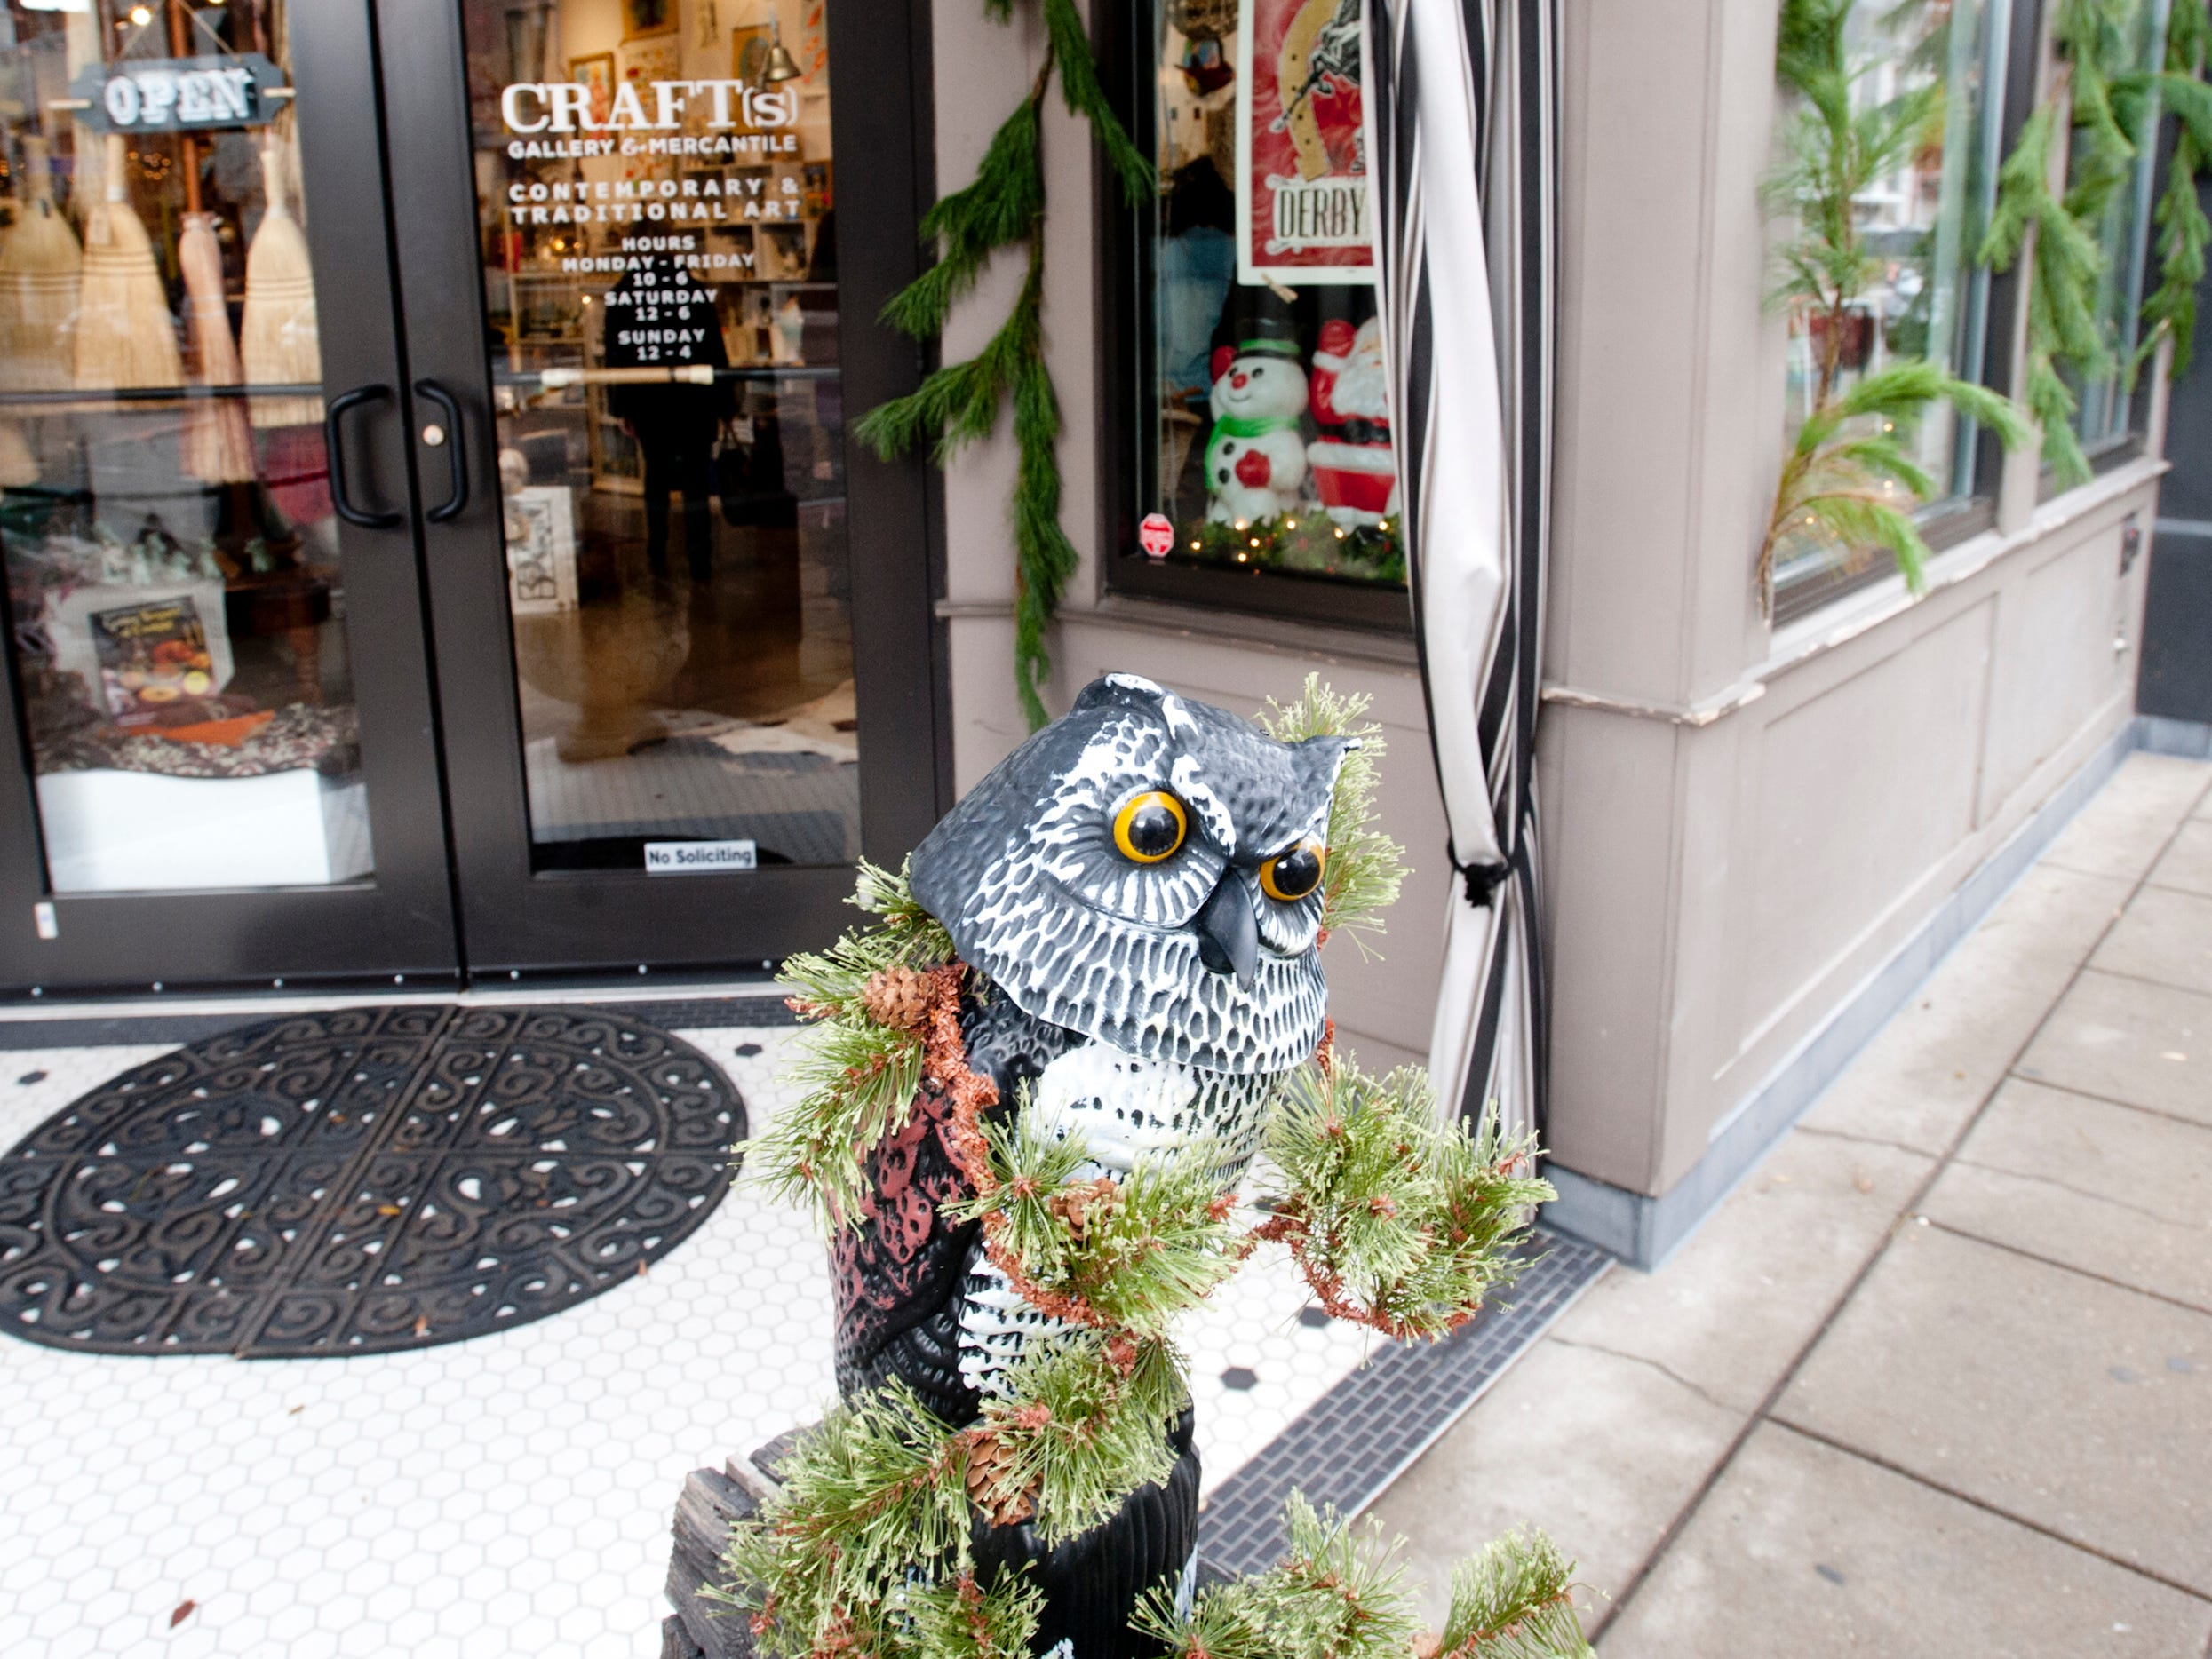 An owl decorated with evergreens, welcomes people the entrance of Craft's Gallery & Mercantile at 574 S. 4th St.24 November 2018